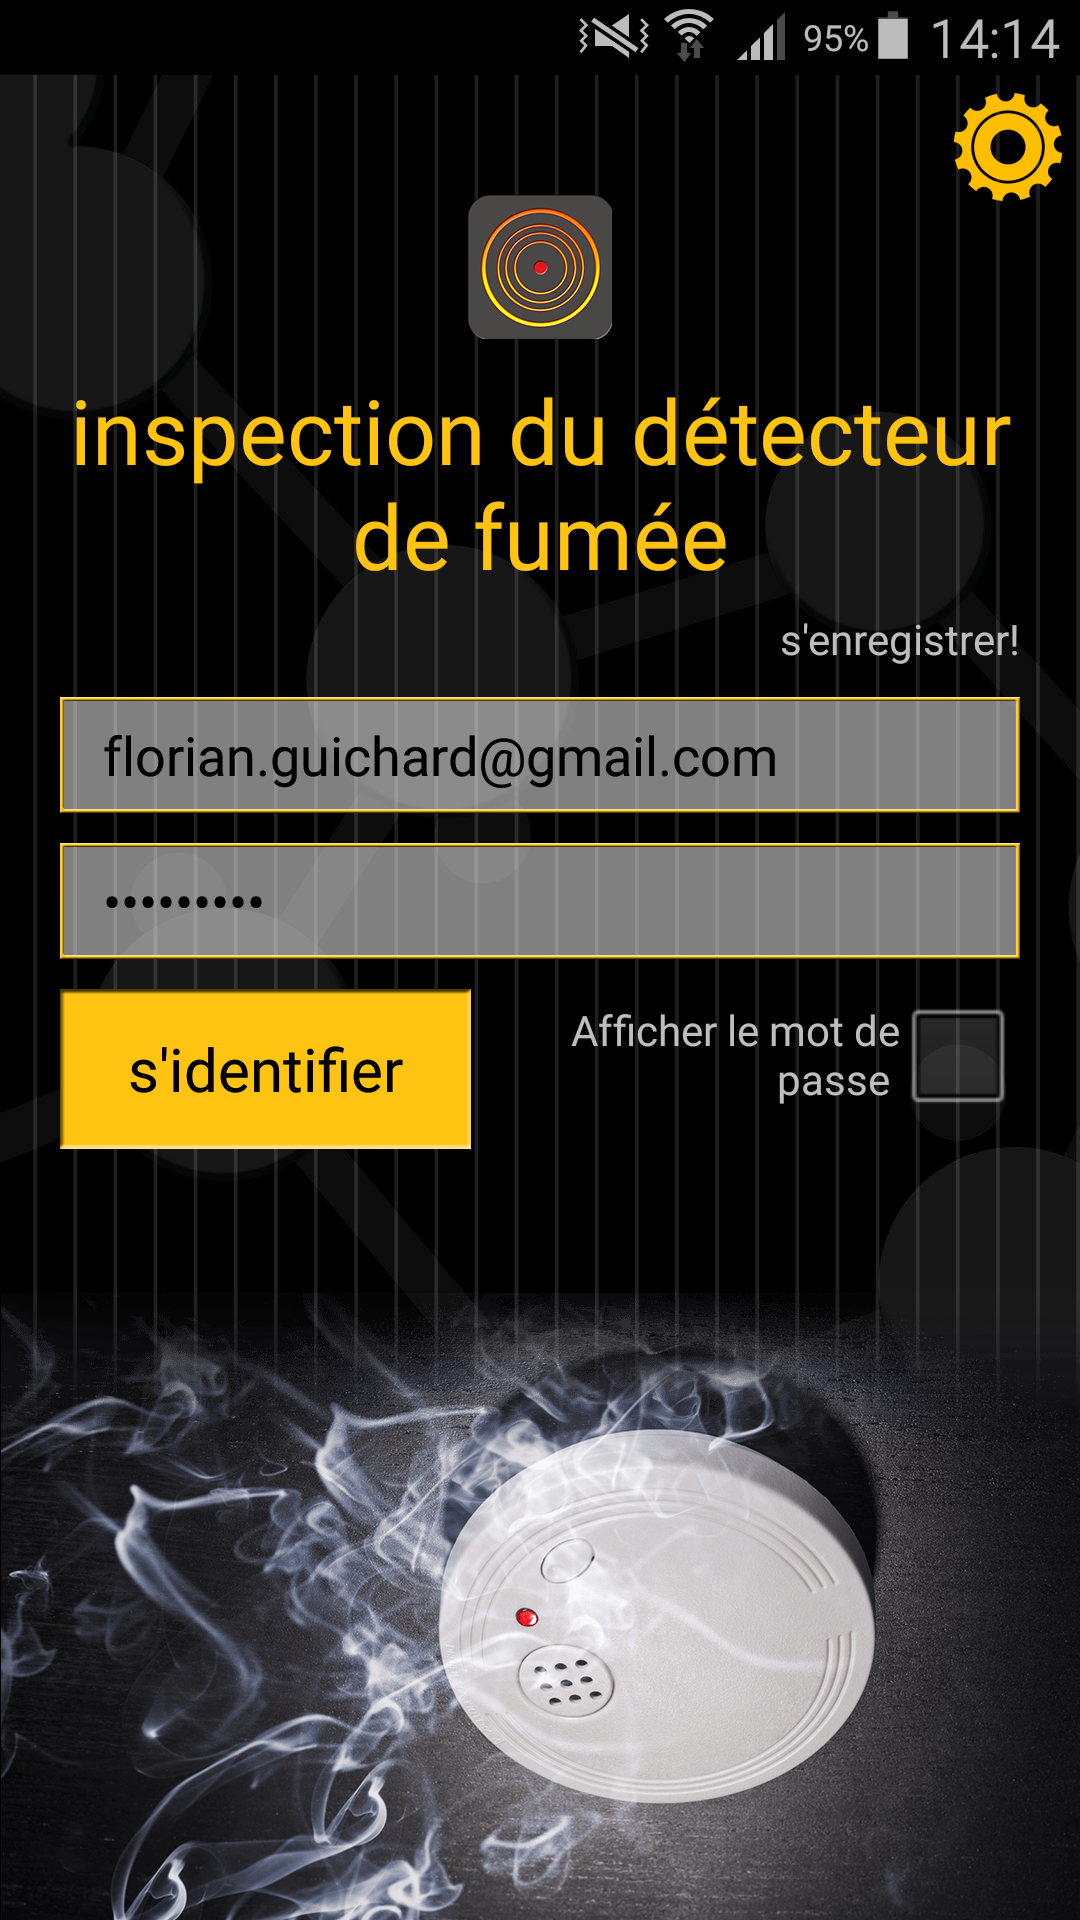 ginstr_app_smokeDetectorInspection_FR_1